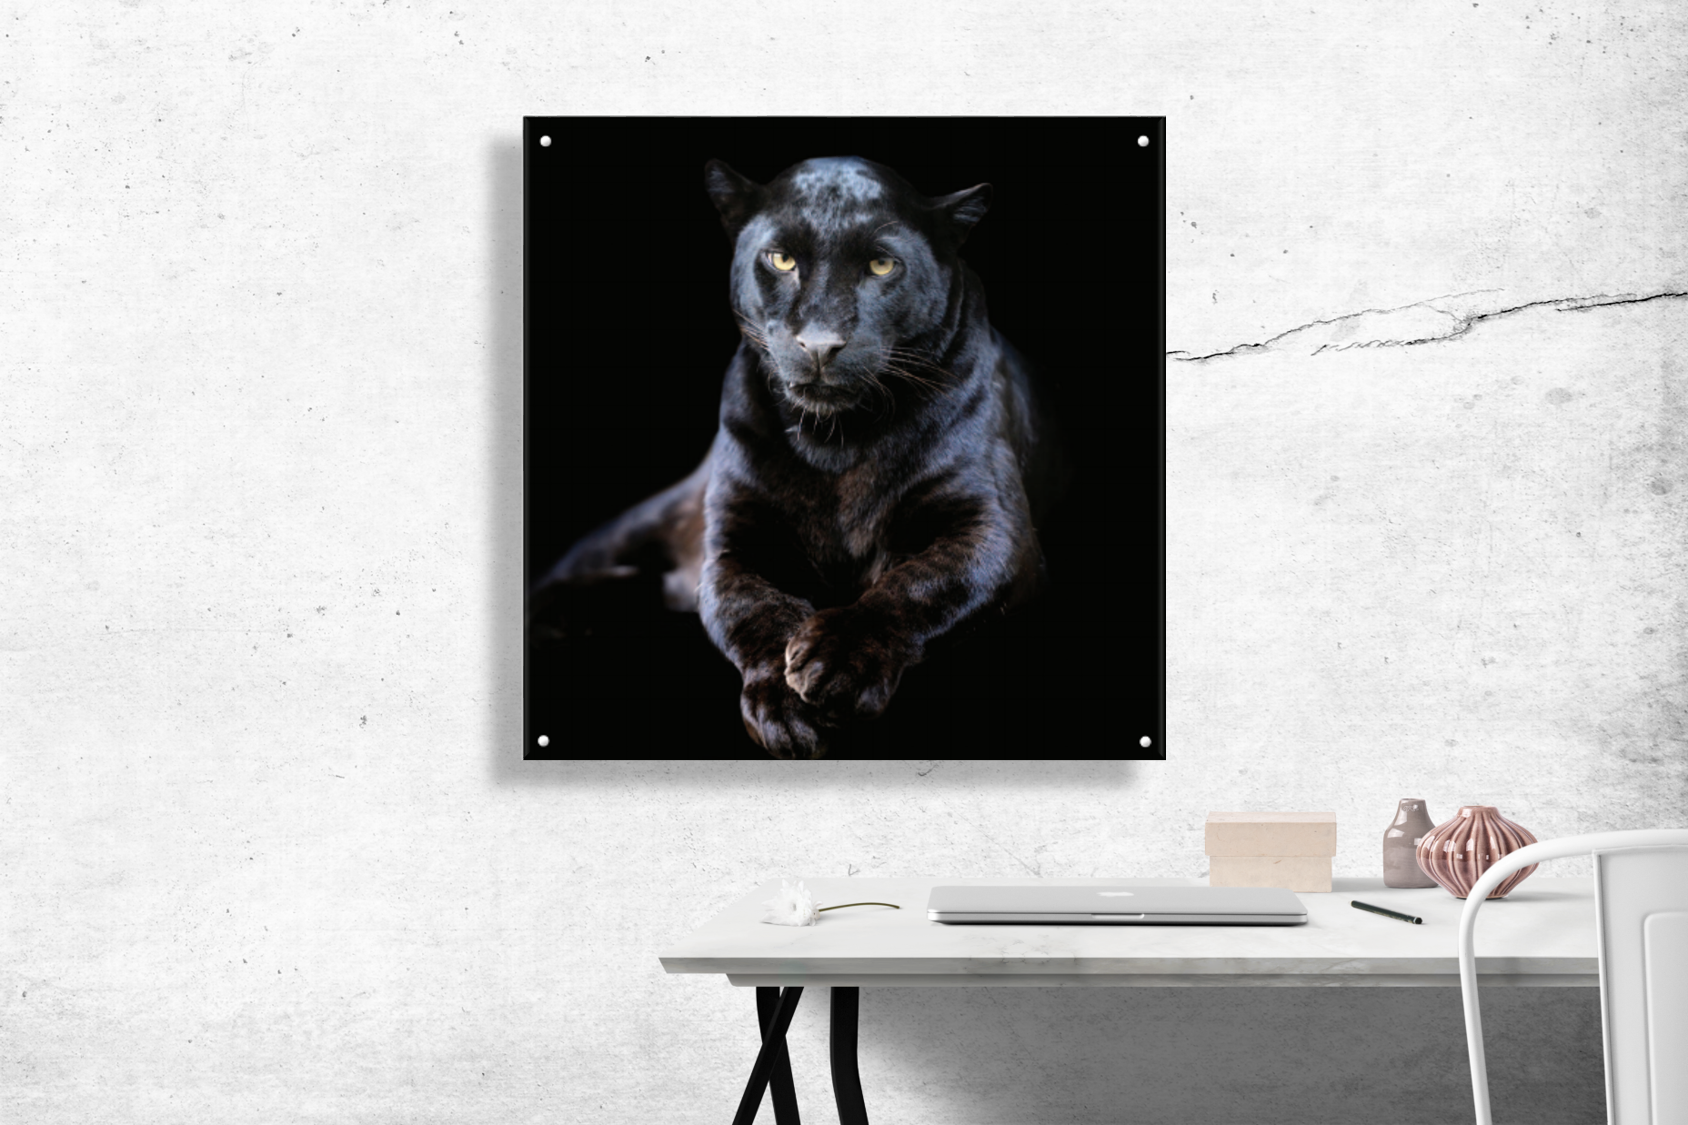 Glass wall art collection - Stunningly beautiful images of iconic animals on high qualitytempered glass, offer a magnificent centrepiece to any home